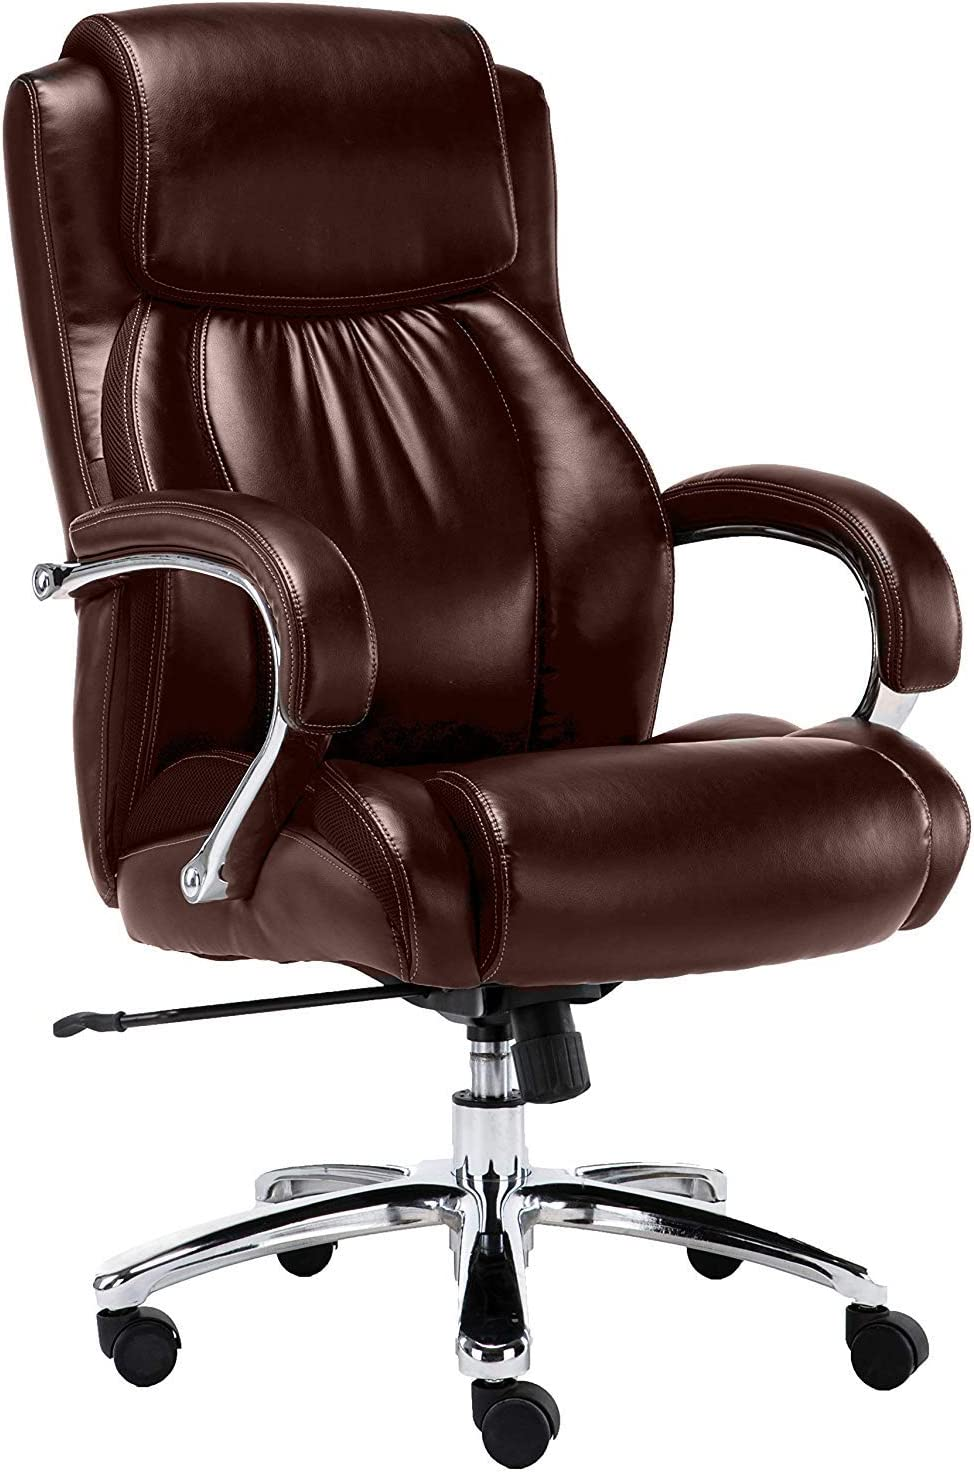 Big and Tall 500 pounds Body Weight Support, Executive Office Chair, Heavy Duty Shiny Bonded Leather, Swivel and tilt, Chrome arms with Extra Thick Padding, Height Adjustment Brown